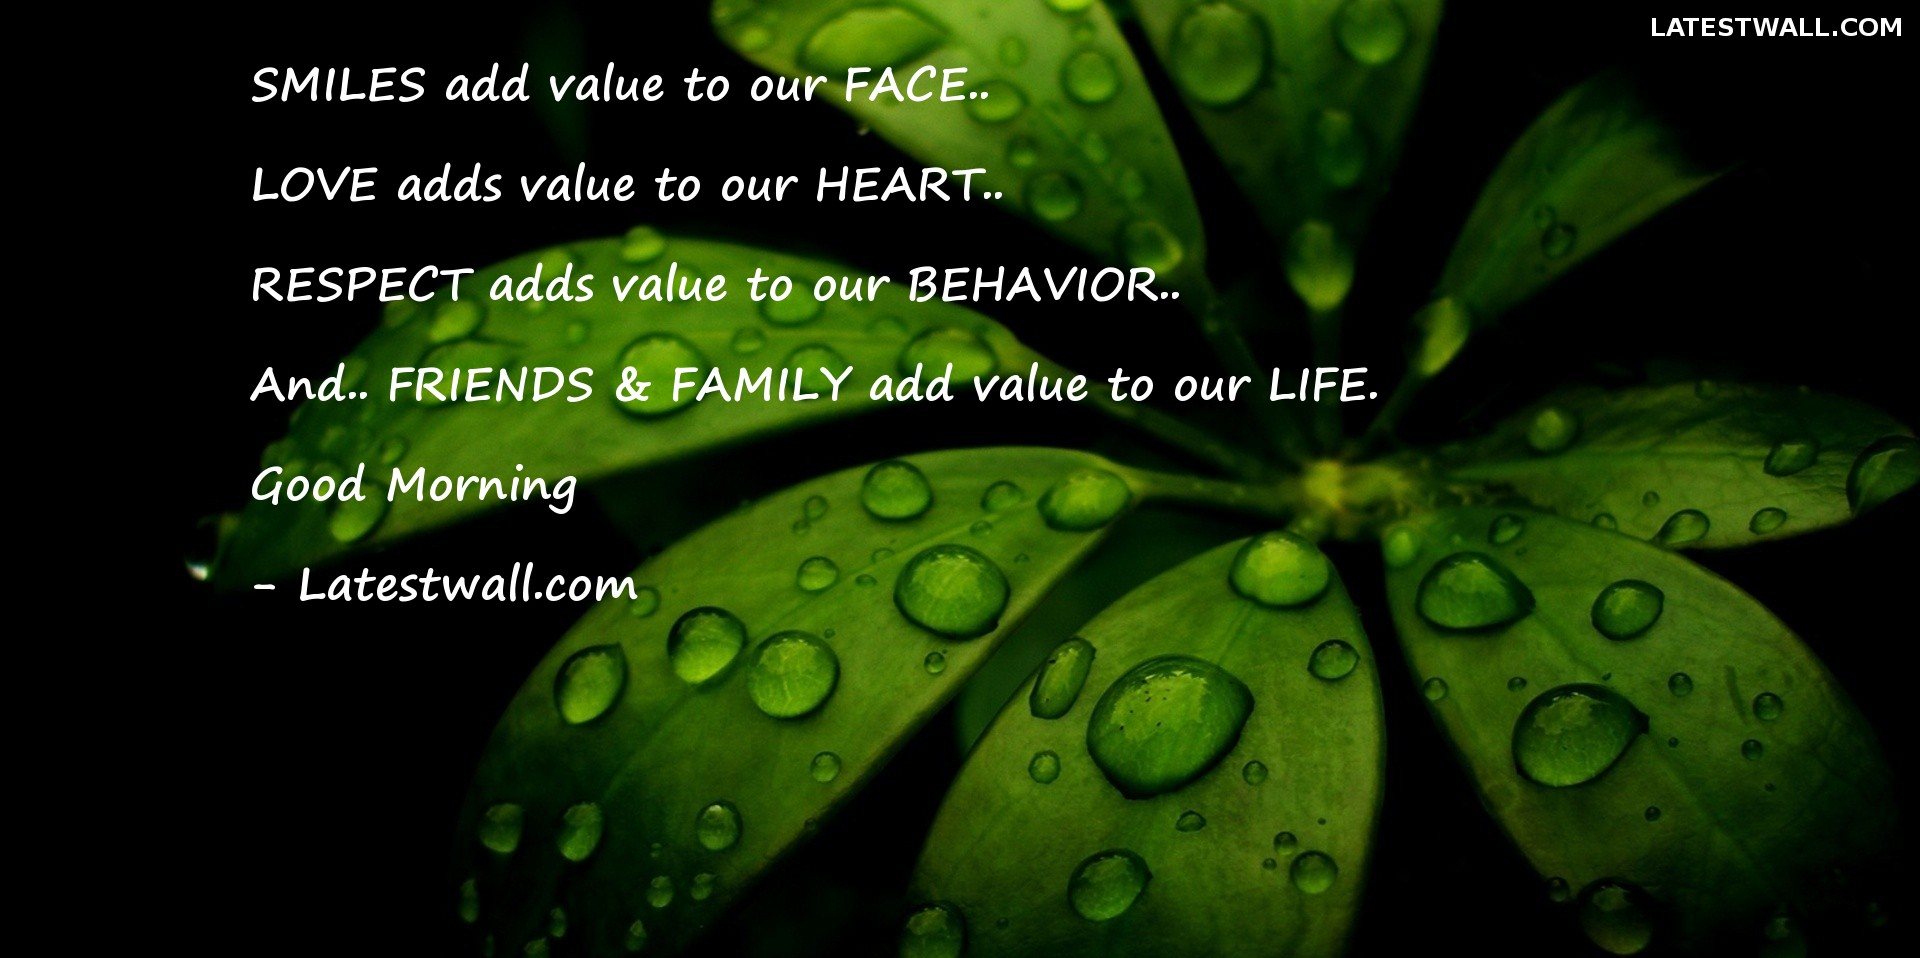 SMILES add value to our FACE